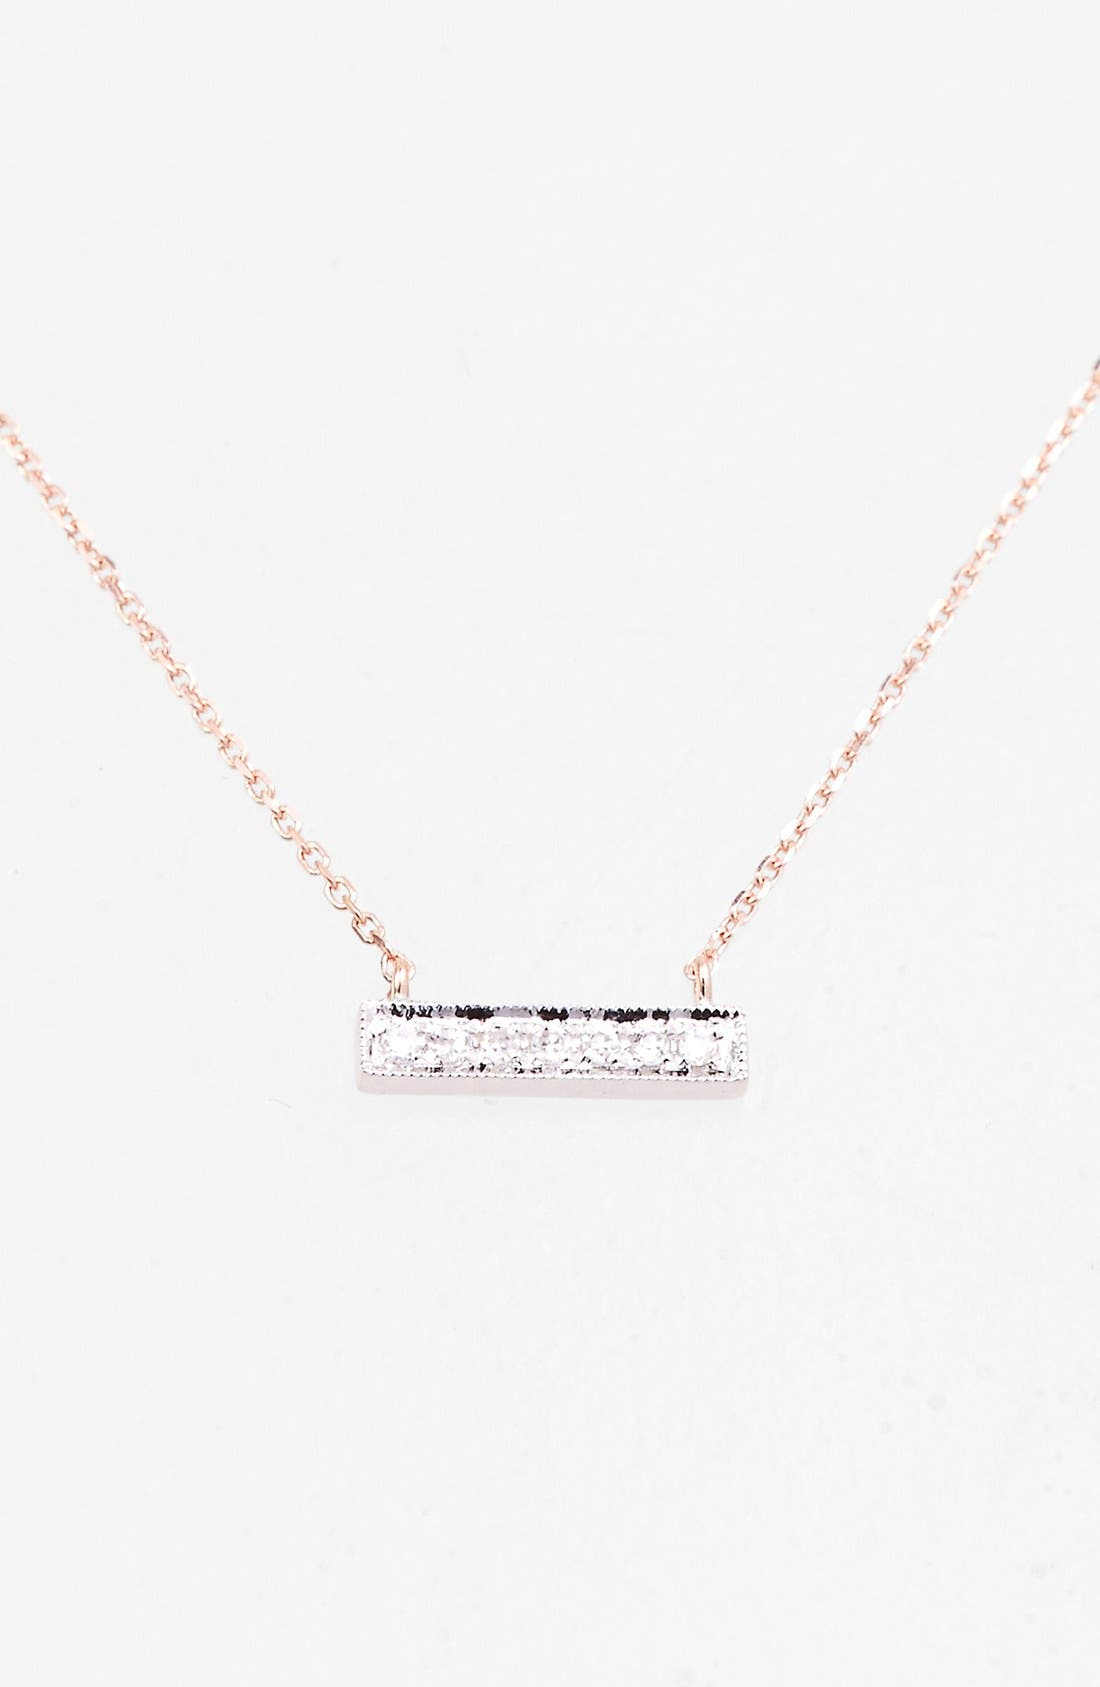 Dana Rebecca Designs 'Sylvie Rose' Diamond Bar Pendant Necklace